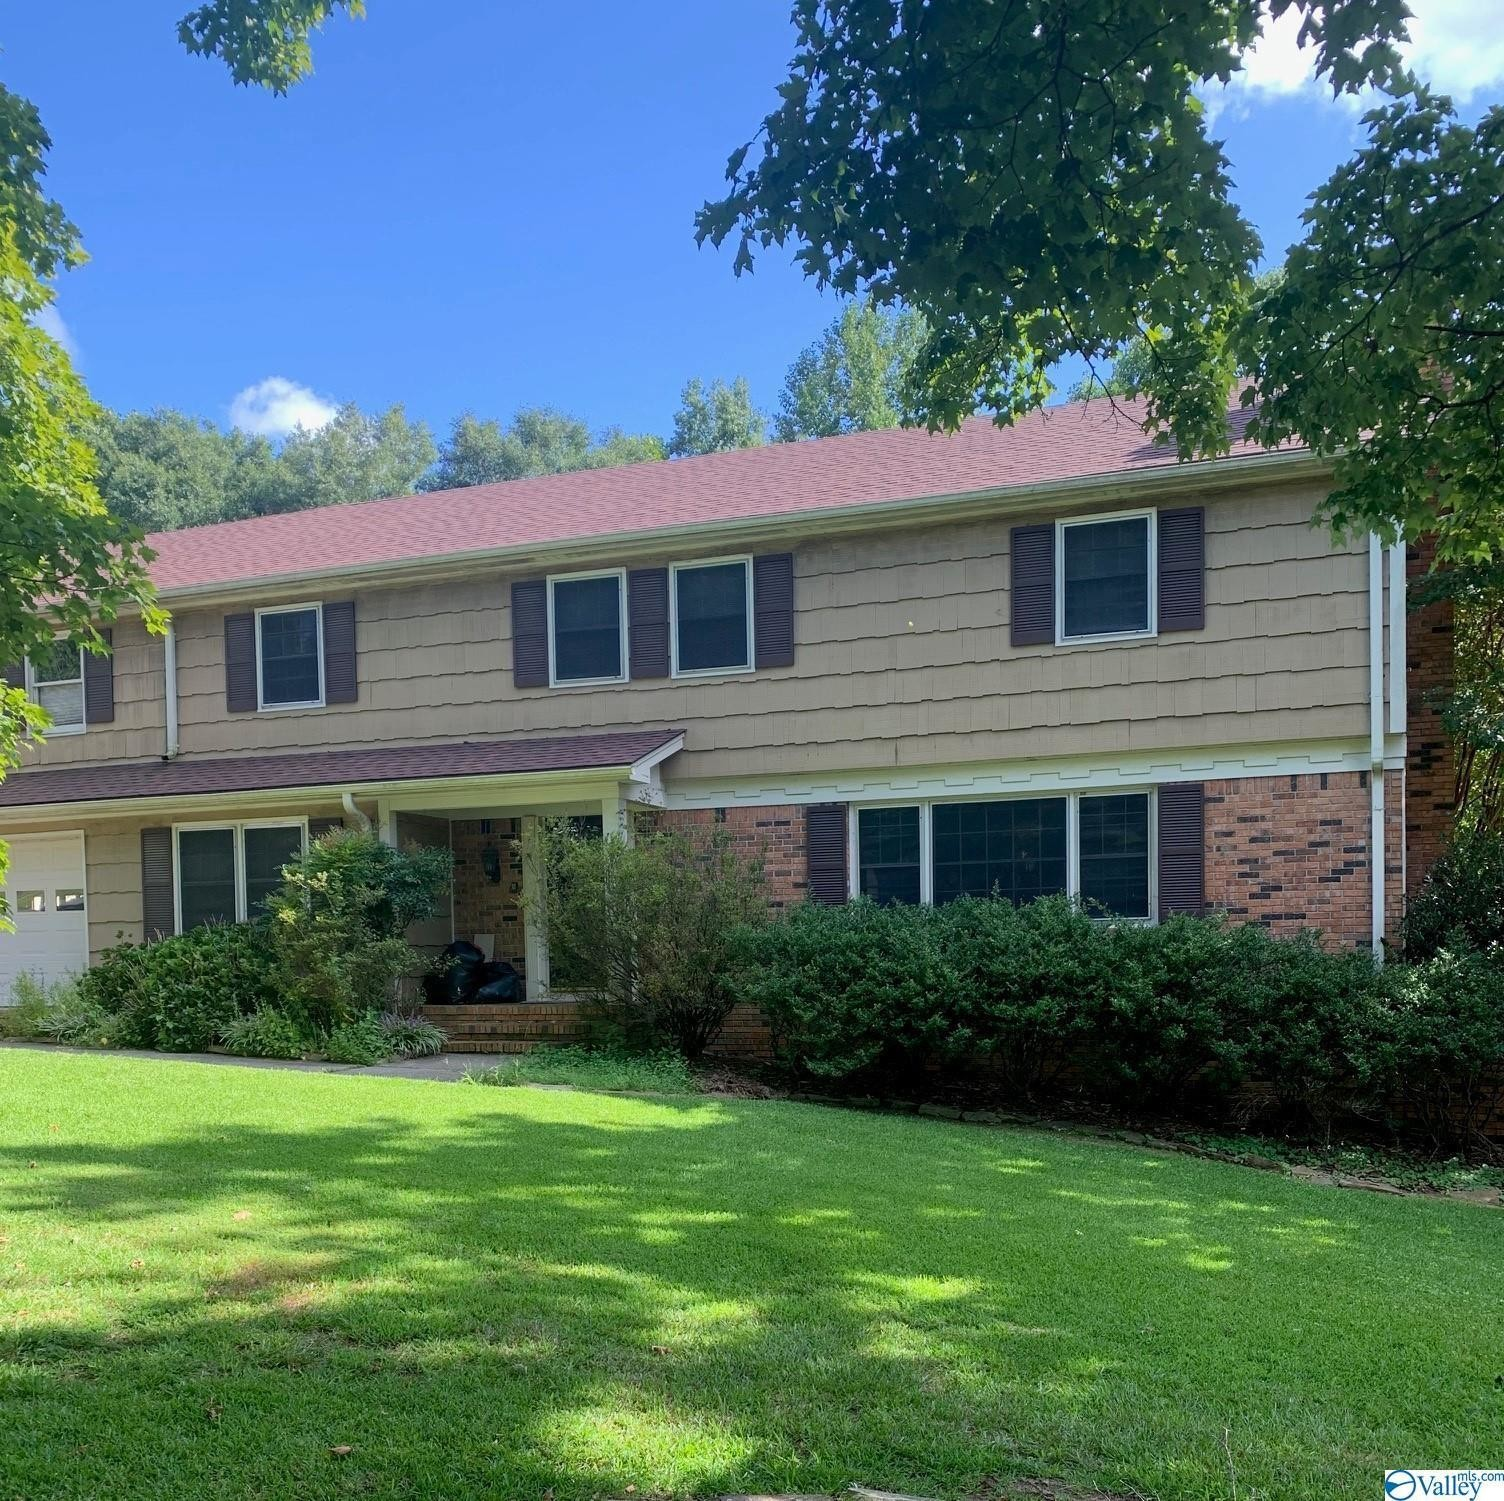 4-Bedroom House In Albertville Country Club